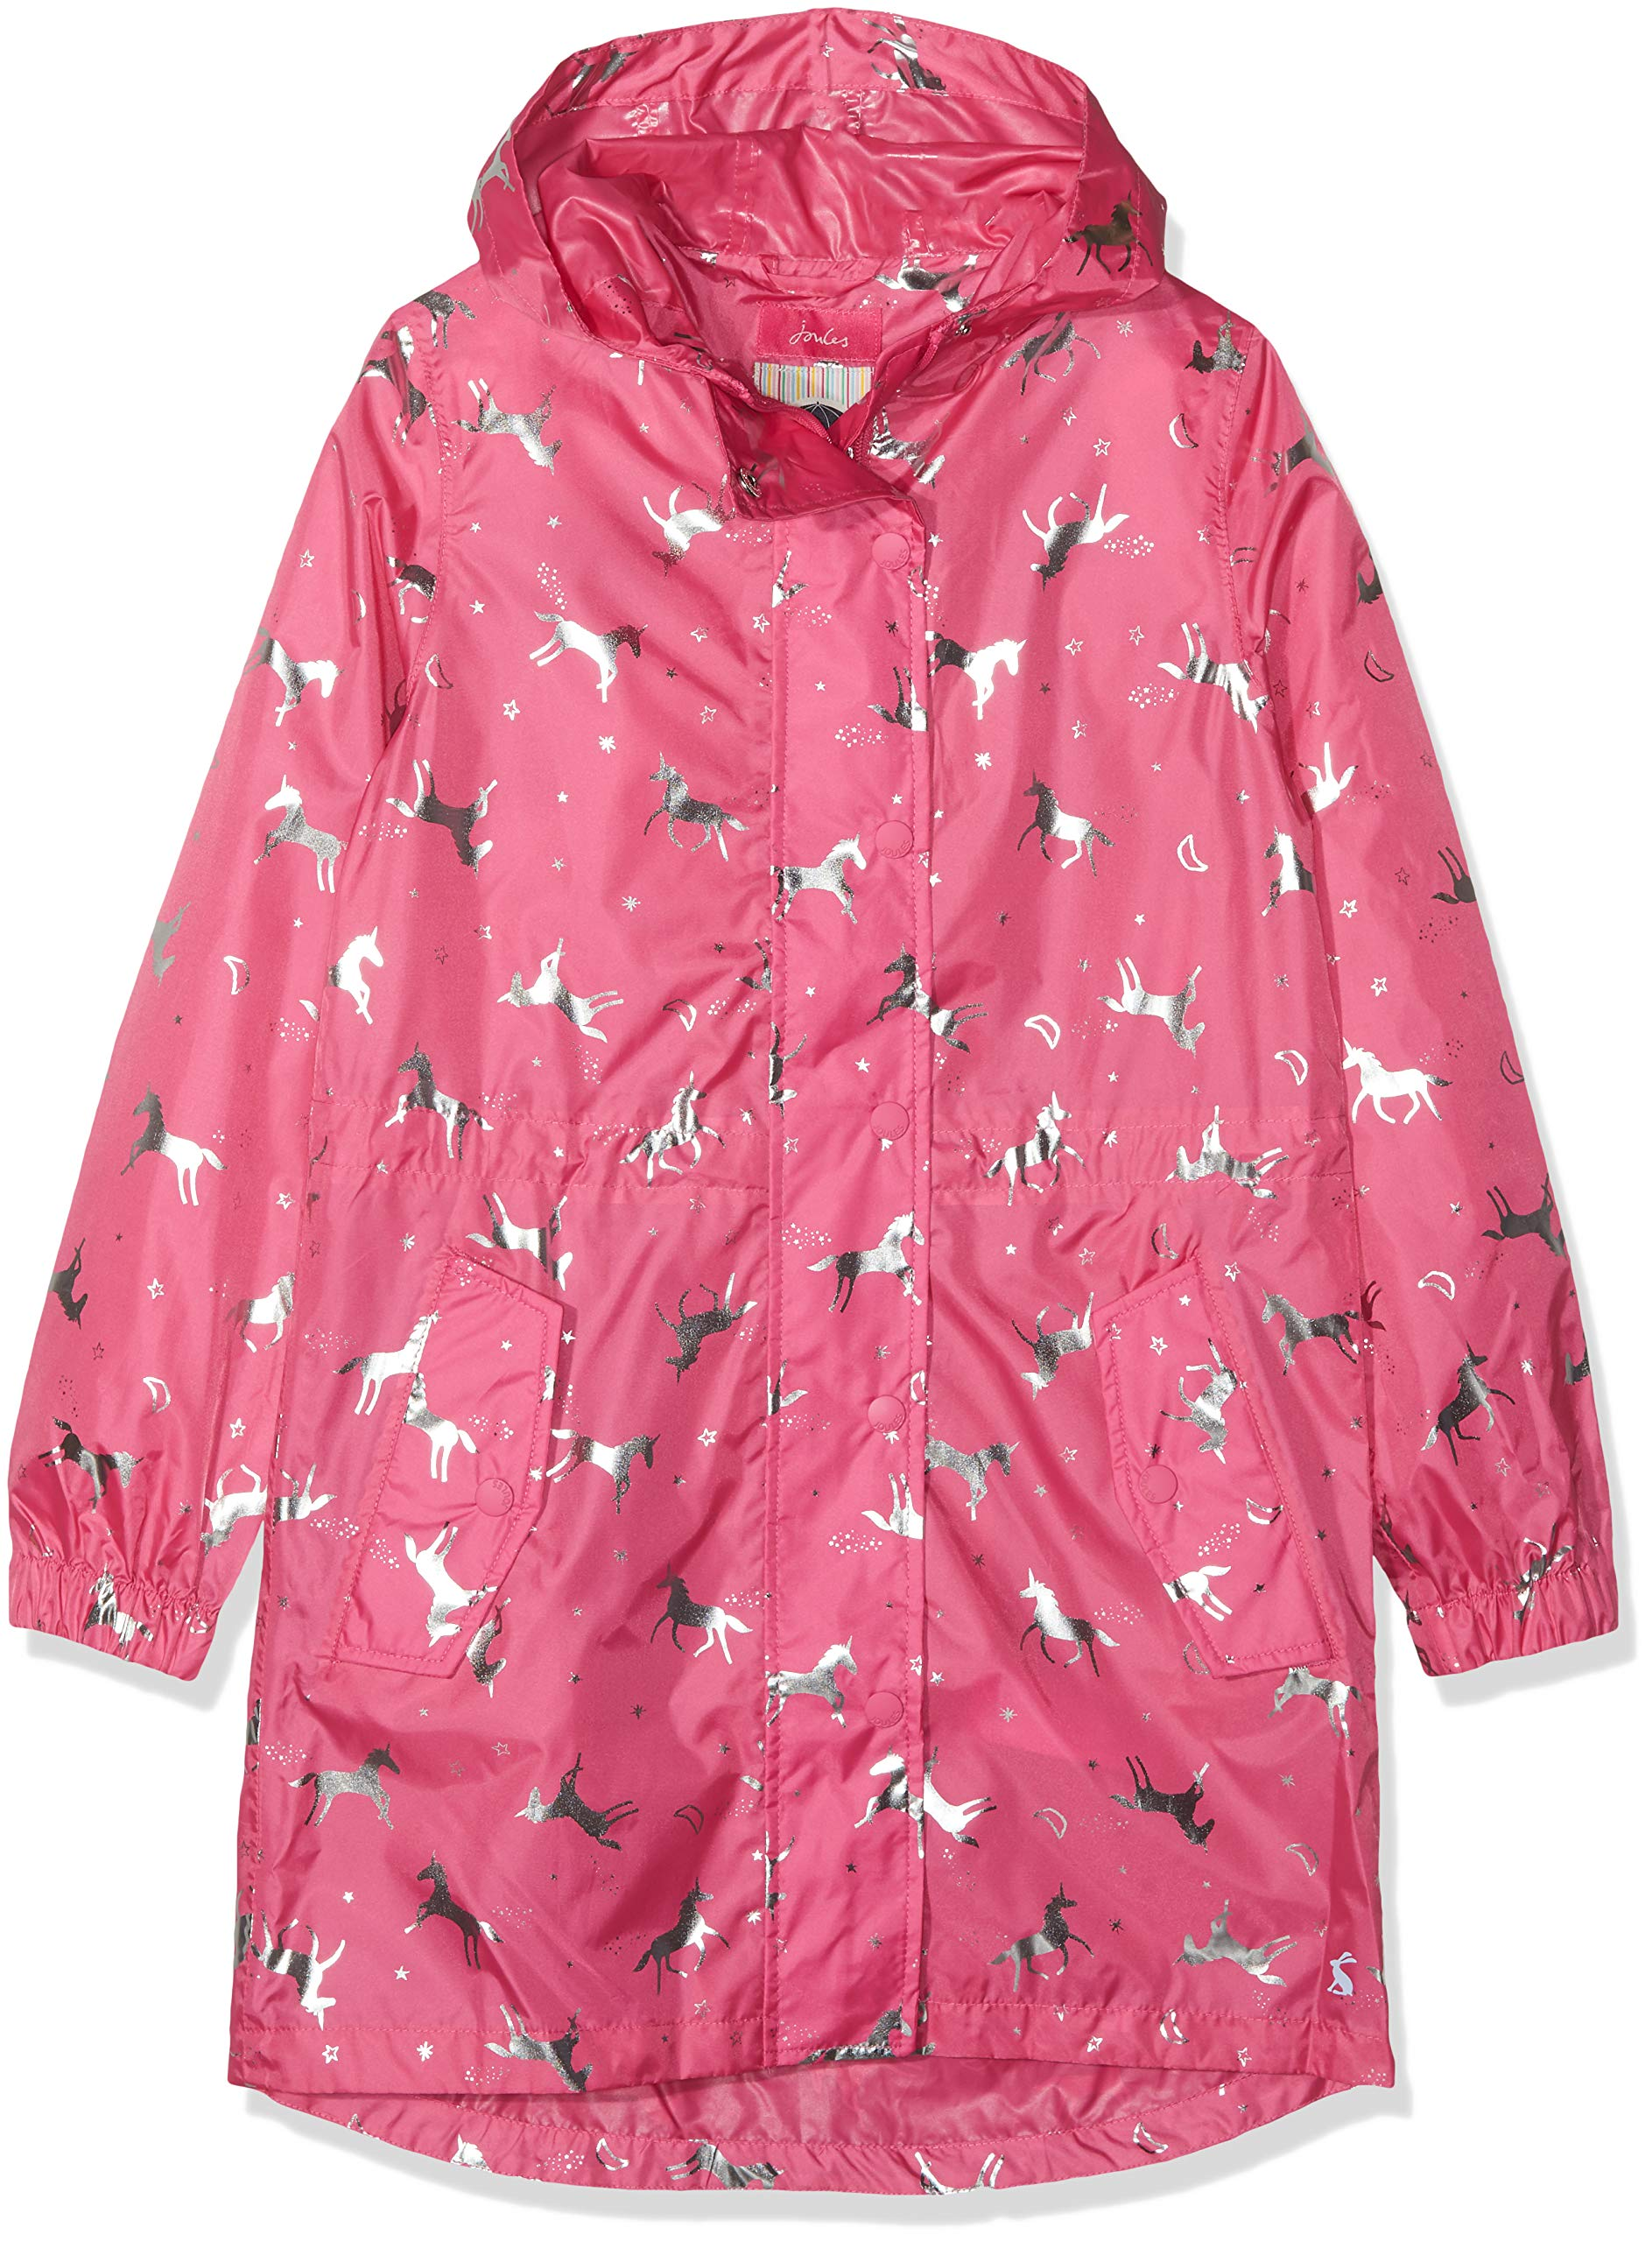 Joules Outerwear Girls' Big Golightly, Unicorn, 7-8 by Joules Outerwear